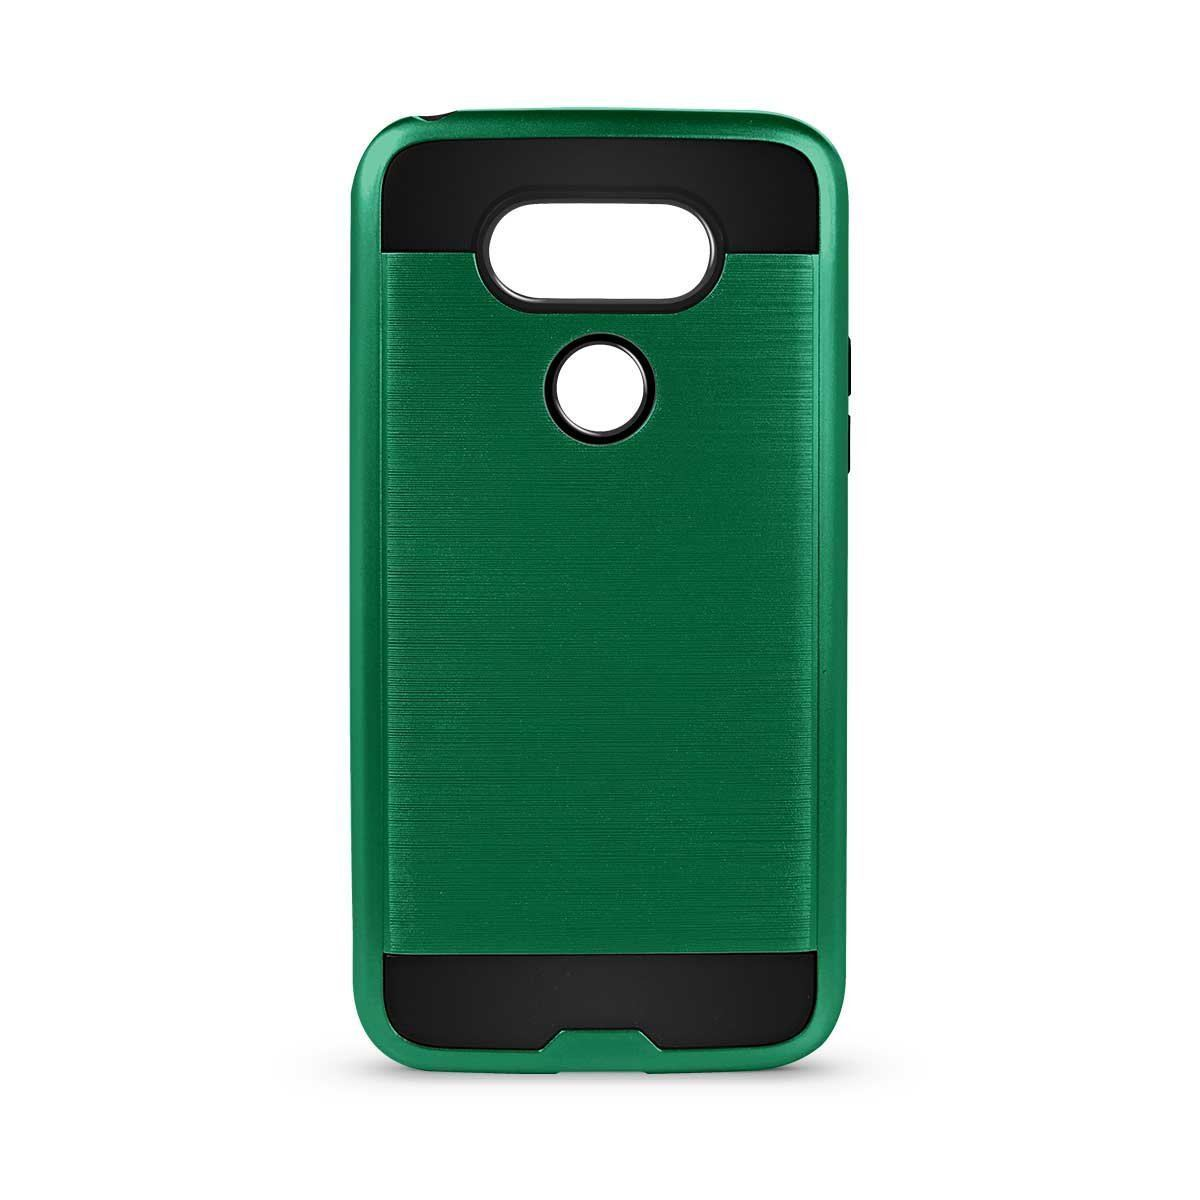 MD Hard Case for LG G5 - Dark Green